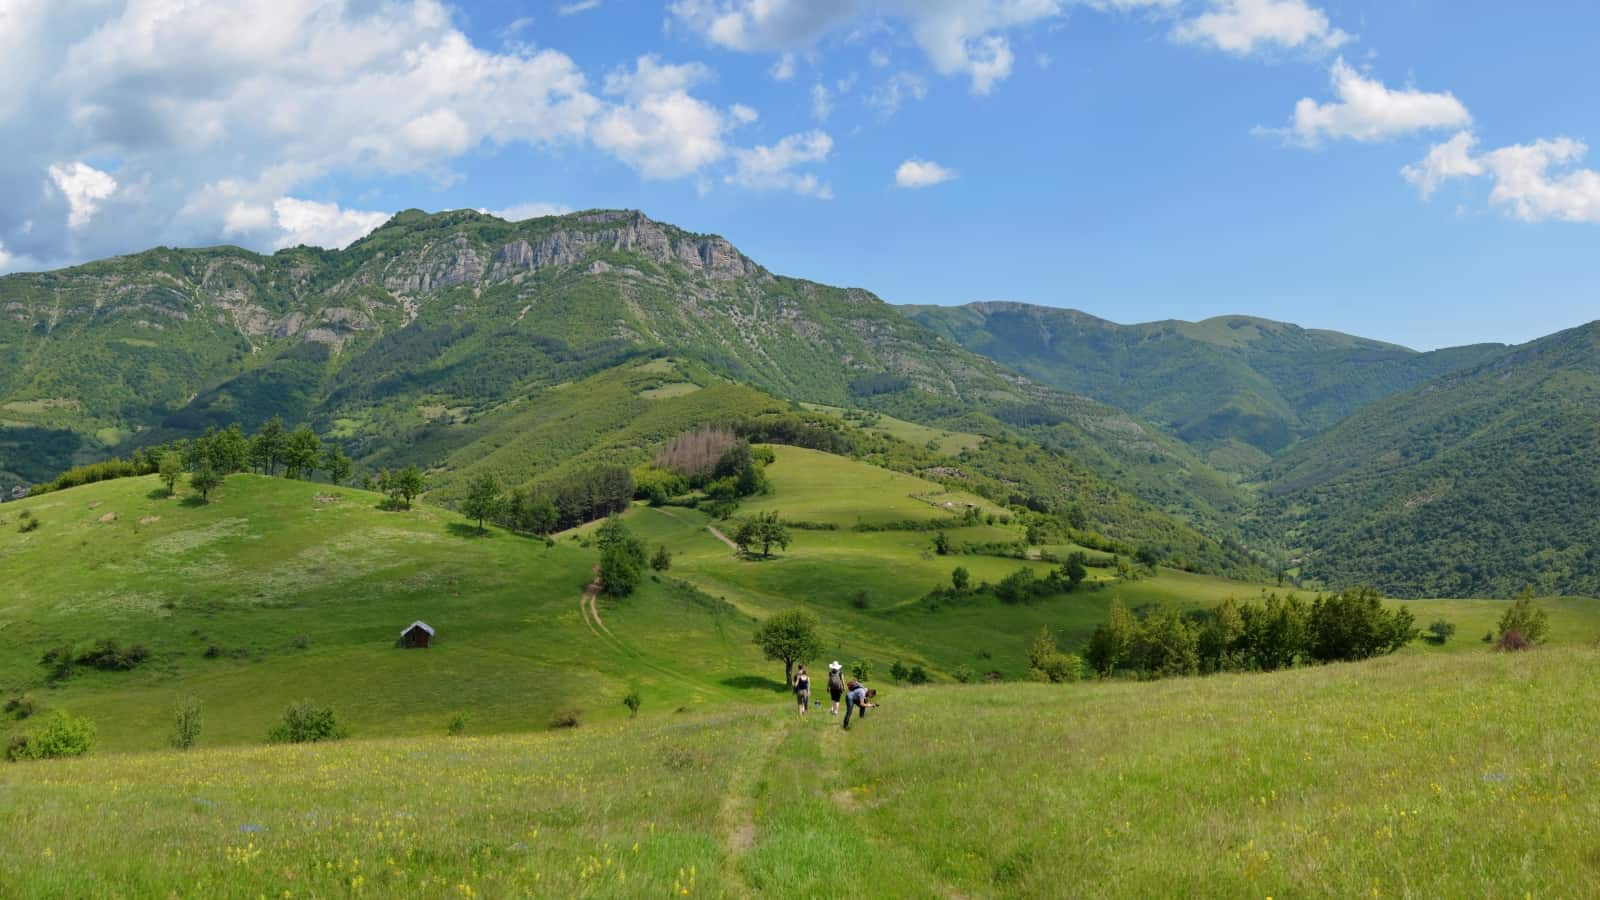 Meadows with orchids - Panorama view of Vrachanski Balkan Nature Park- photo: Vrachanski Balkan Nature Park/Krasimir Lakovski